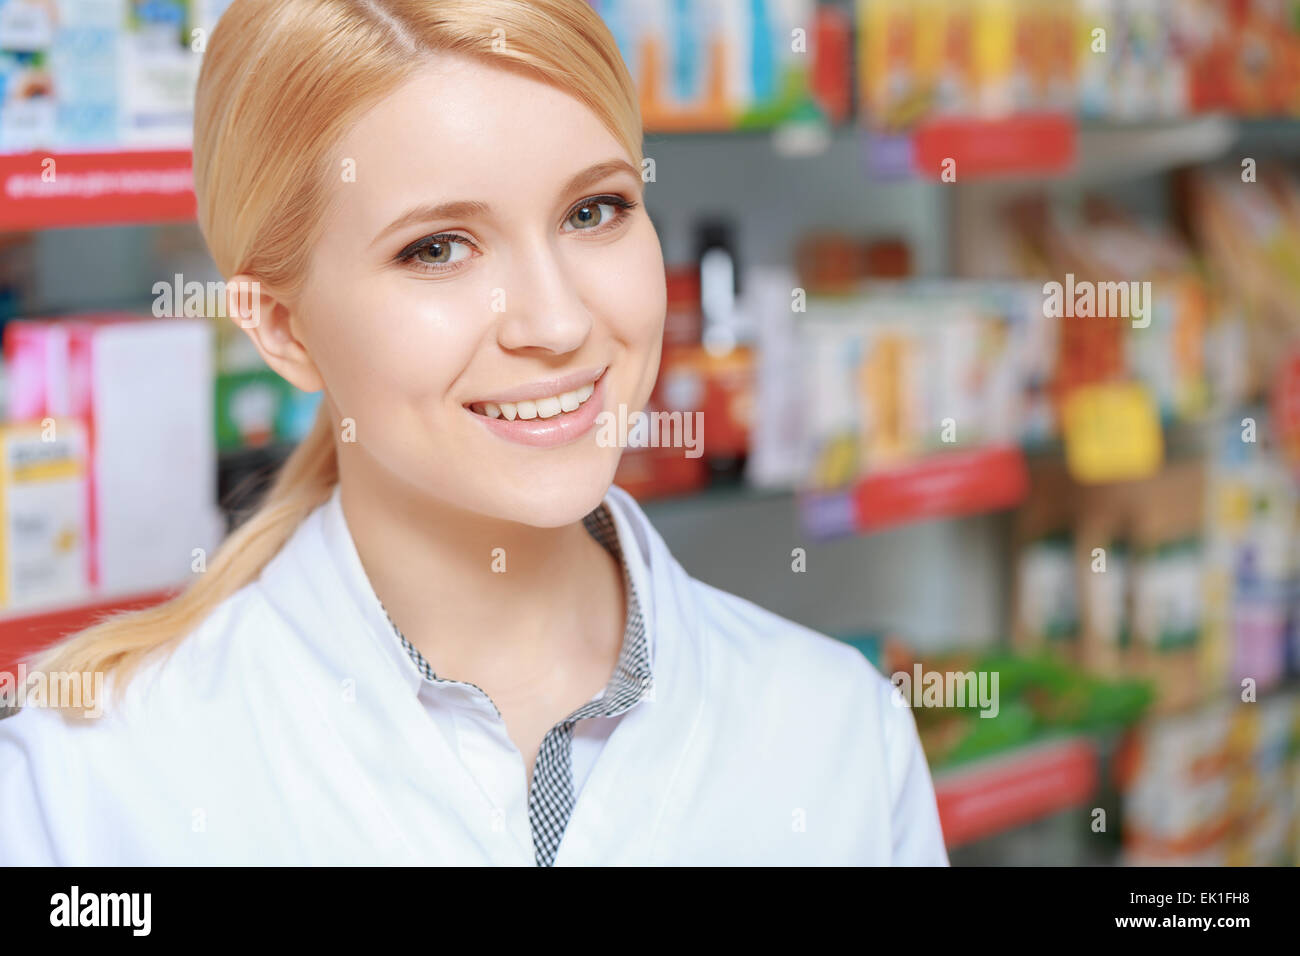 Helpful and smiling pharmacist - Stock Image